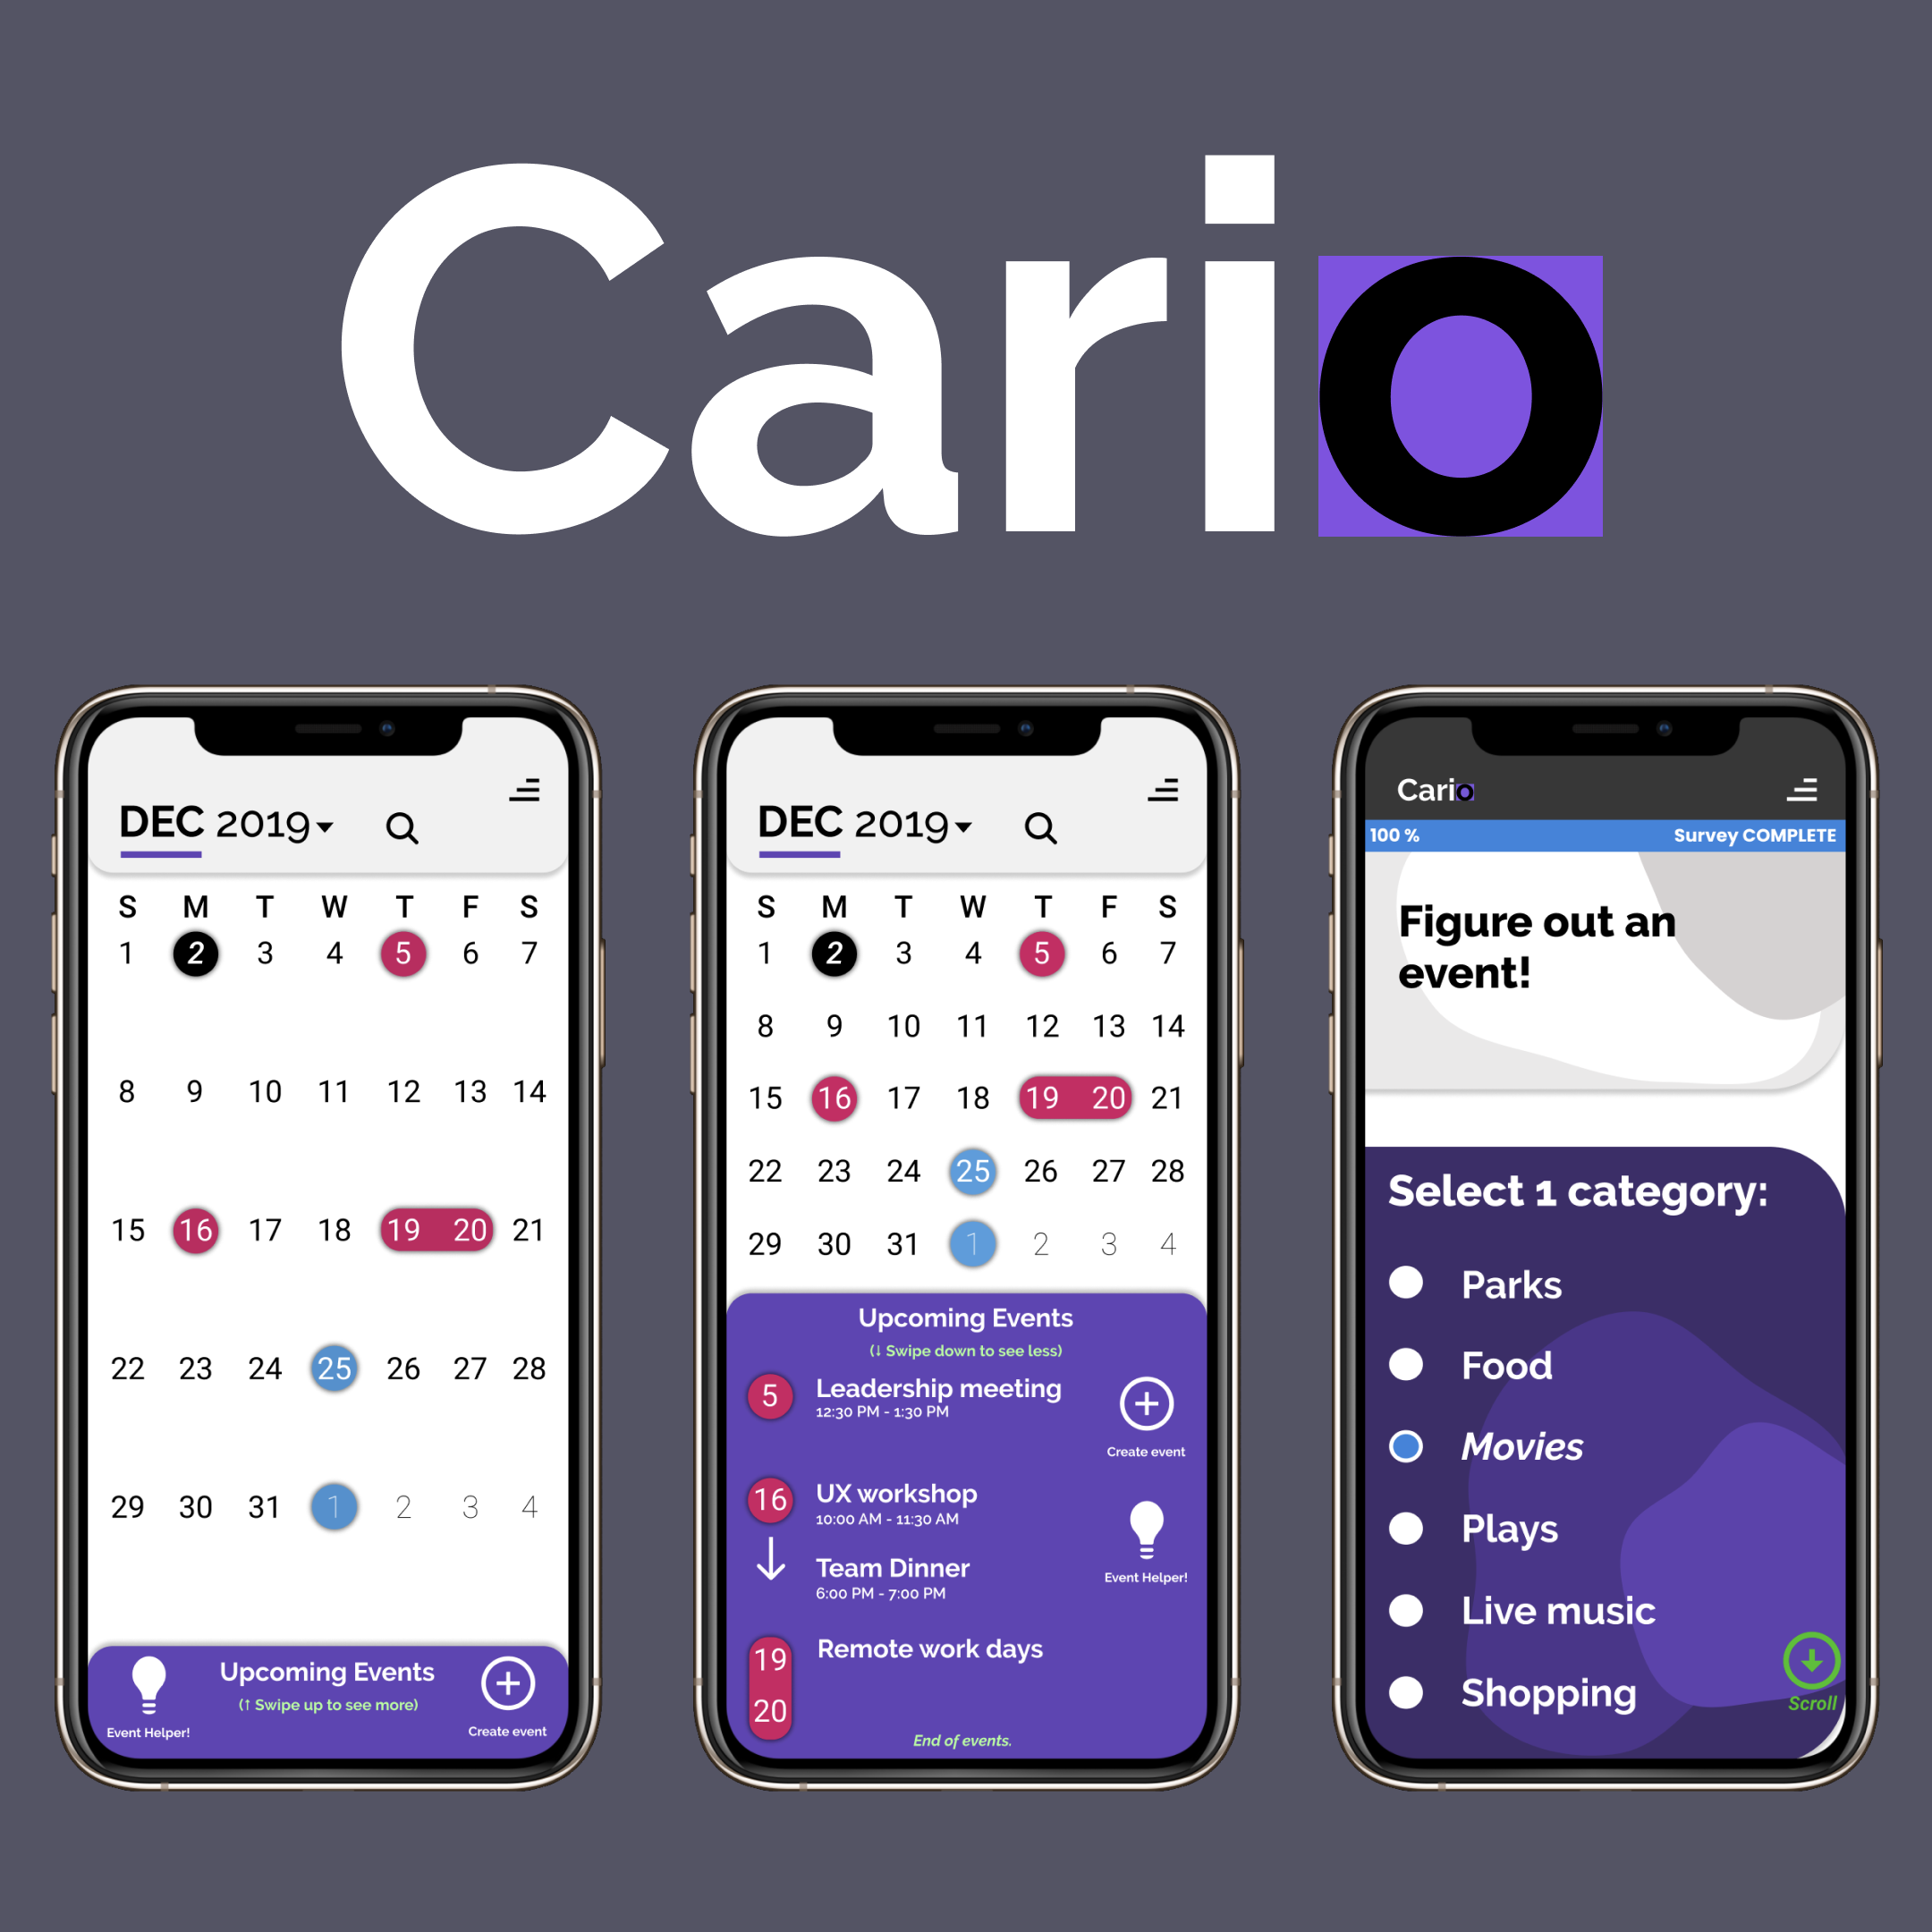 Cario: The calendar that helps you decide what to do